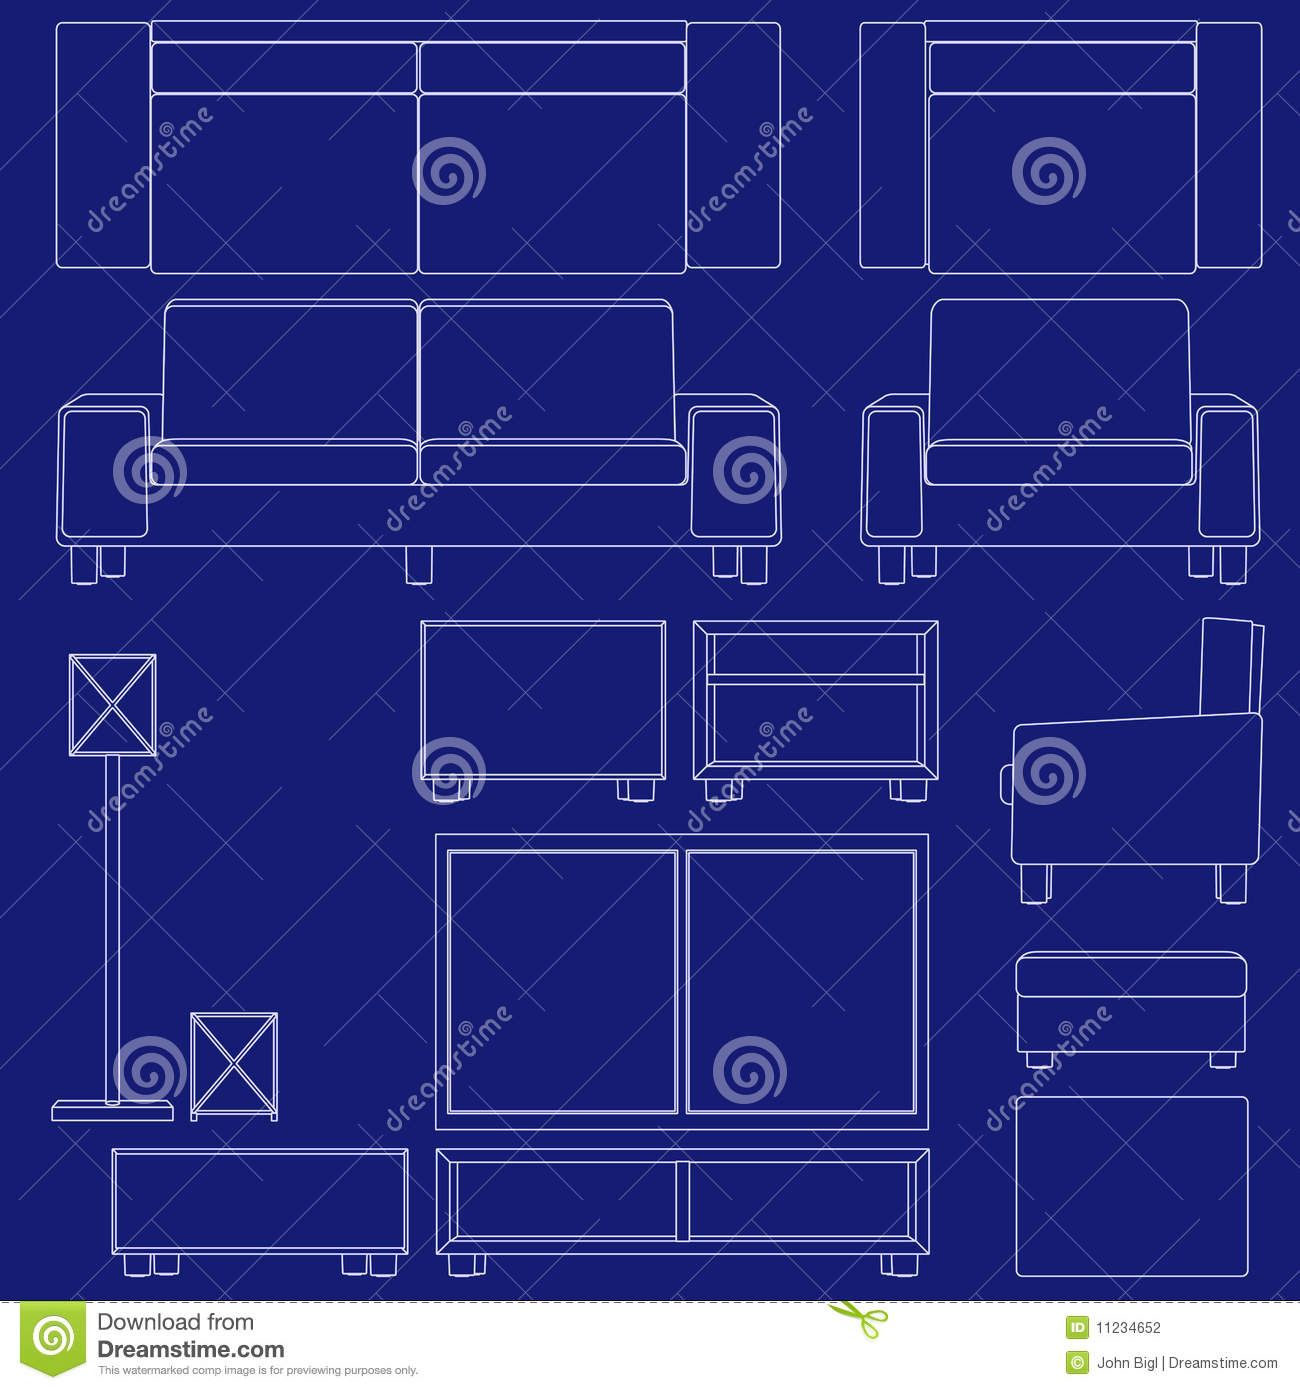 Blueprint furniture ottawa free shed drawings plans how to build a blueprint furniture ottawabig shed geelong10x20 storage shed plans step 1 malvernweather Images